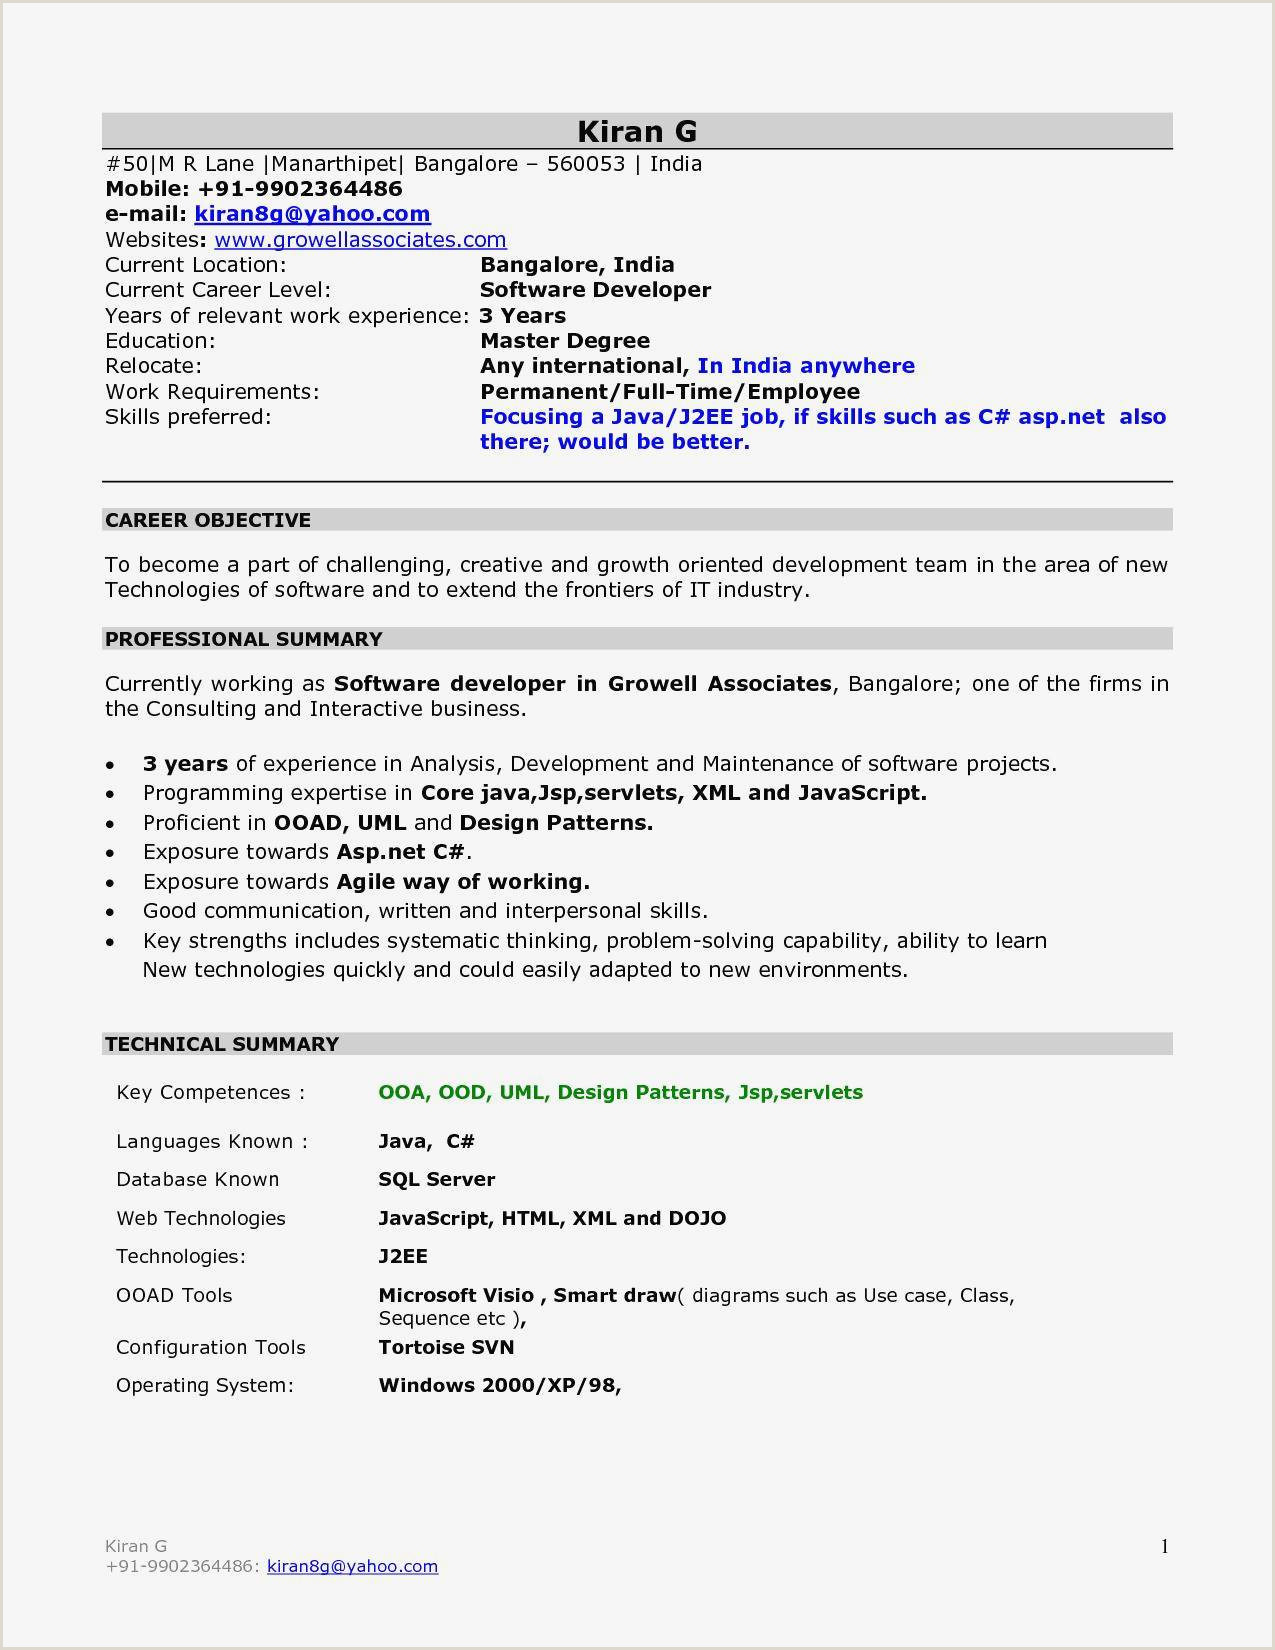 Fresher Resume Format For Engineers Ece Cv Vierge Meilleur De Resume Format For Freshers Mechanical